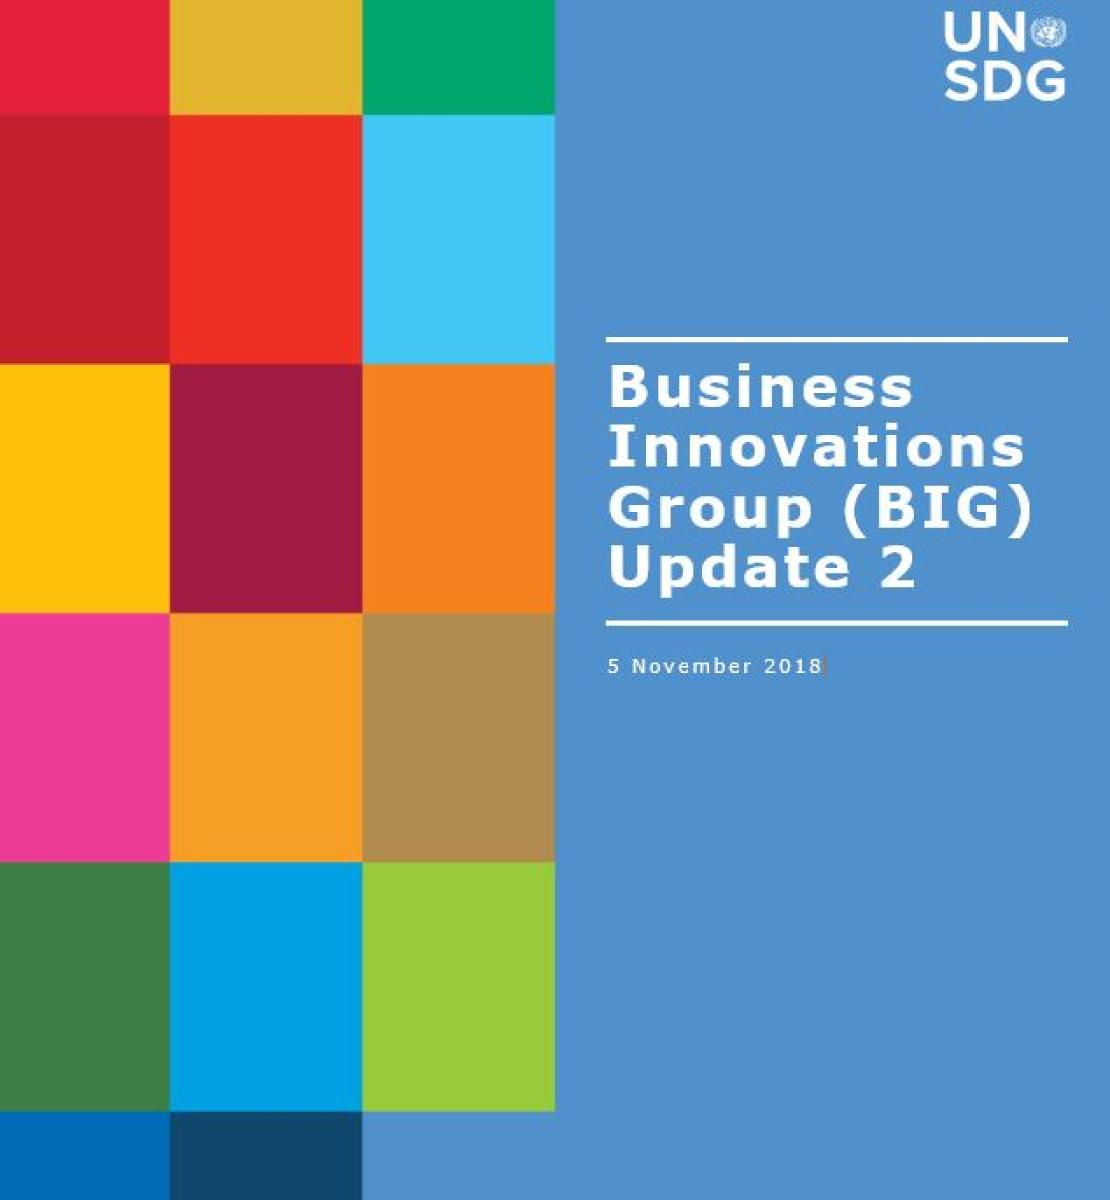 Cover shows BIG Update 2 title against a solid background by a grid of colourful rectangle grid.